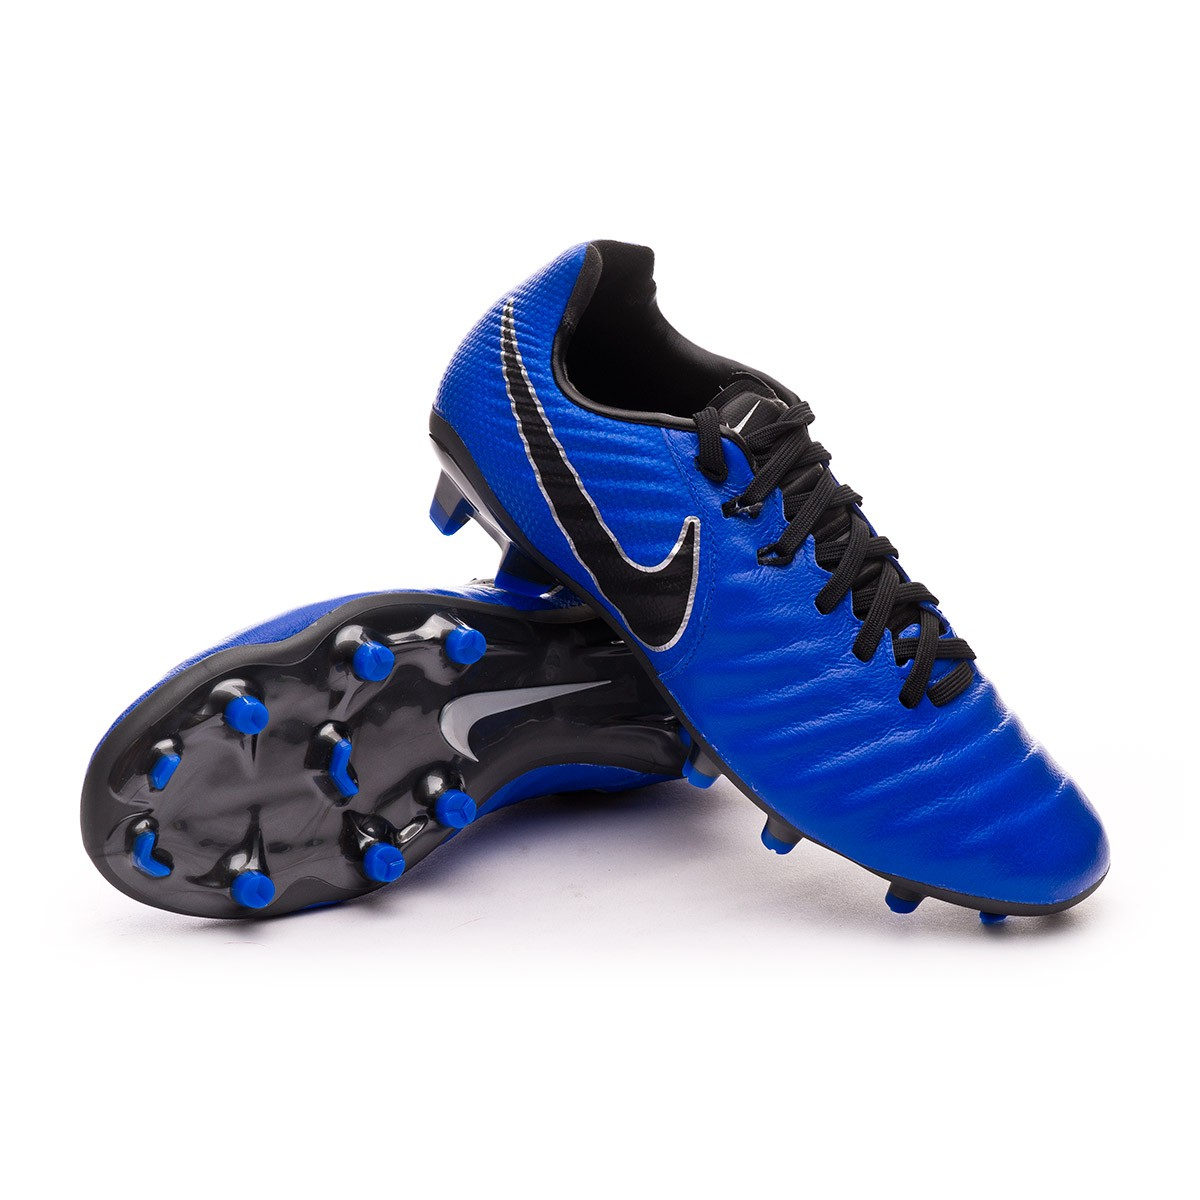 pañuelo de papel patrocinado Ruina  Football Boots Nike Kids Tiempo Legend VII Elite FG Racer  blue-Black-Metallic silver - Football store Fútbol Emotion